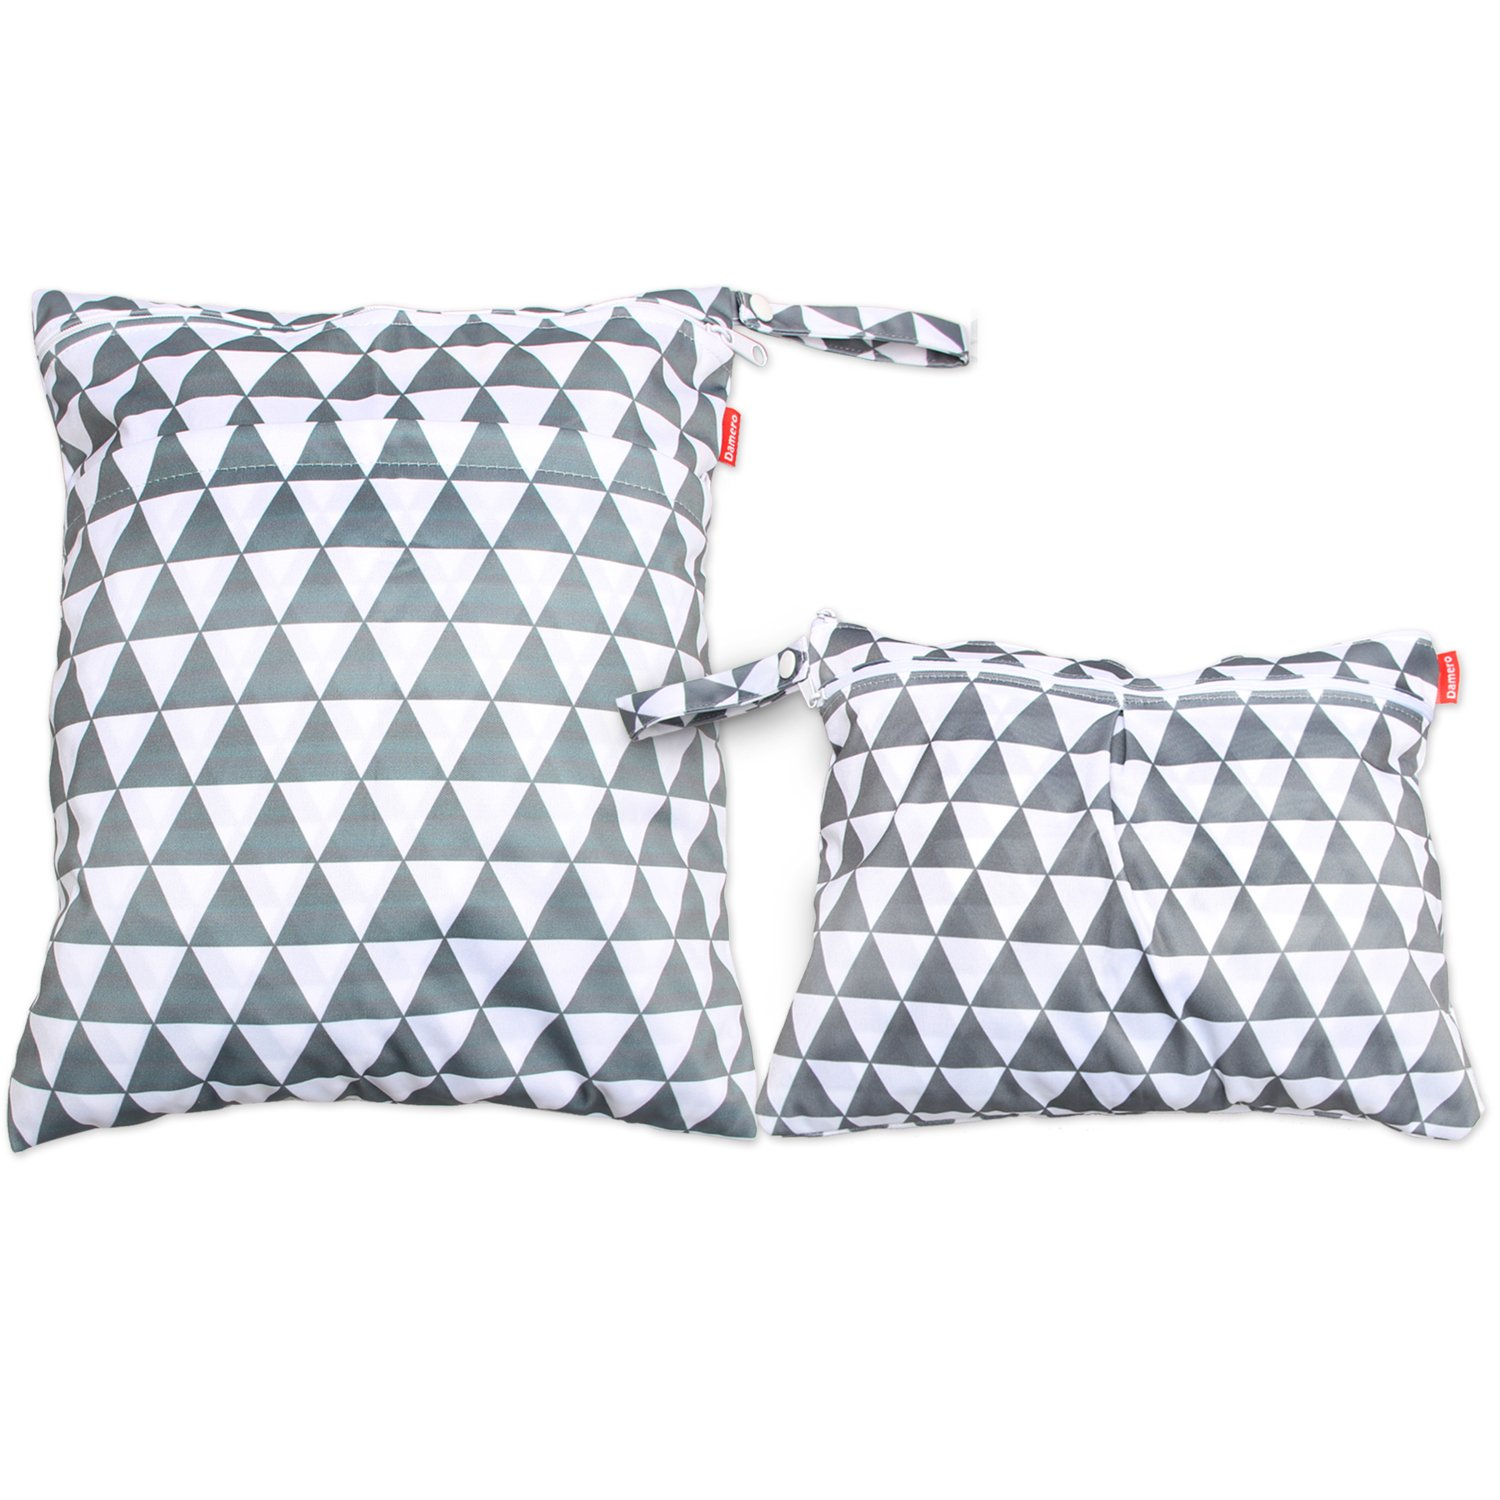 Damero 2pcs Travel Wet and Dry Bag with Handle for Cloth Diaper, Pumping Parts, Clothes, Swimsuit and More, Easy to Grab and Go, Gray Triangle